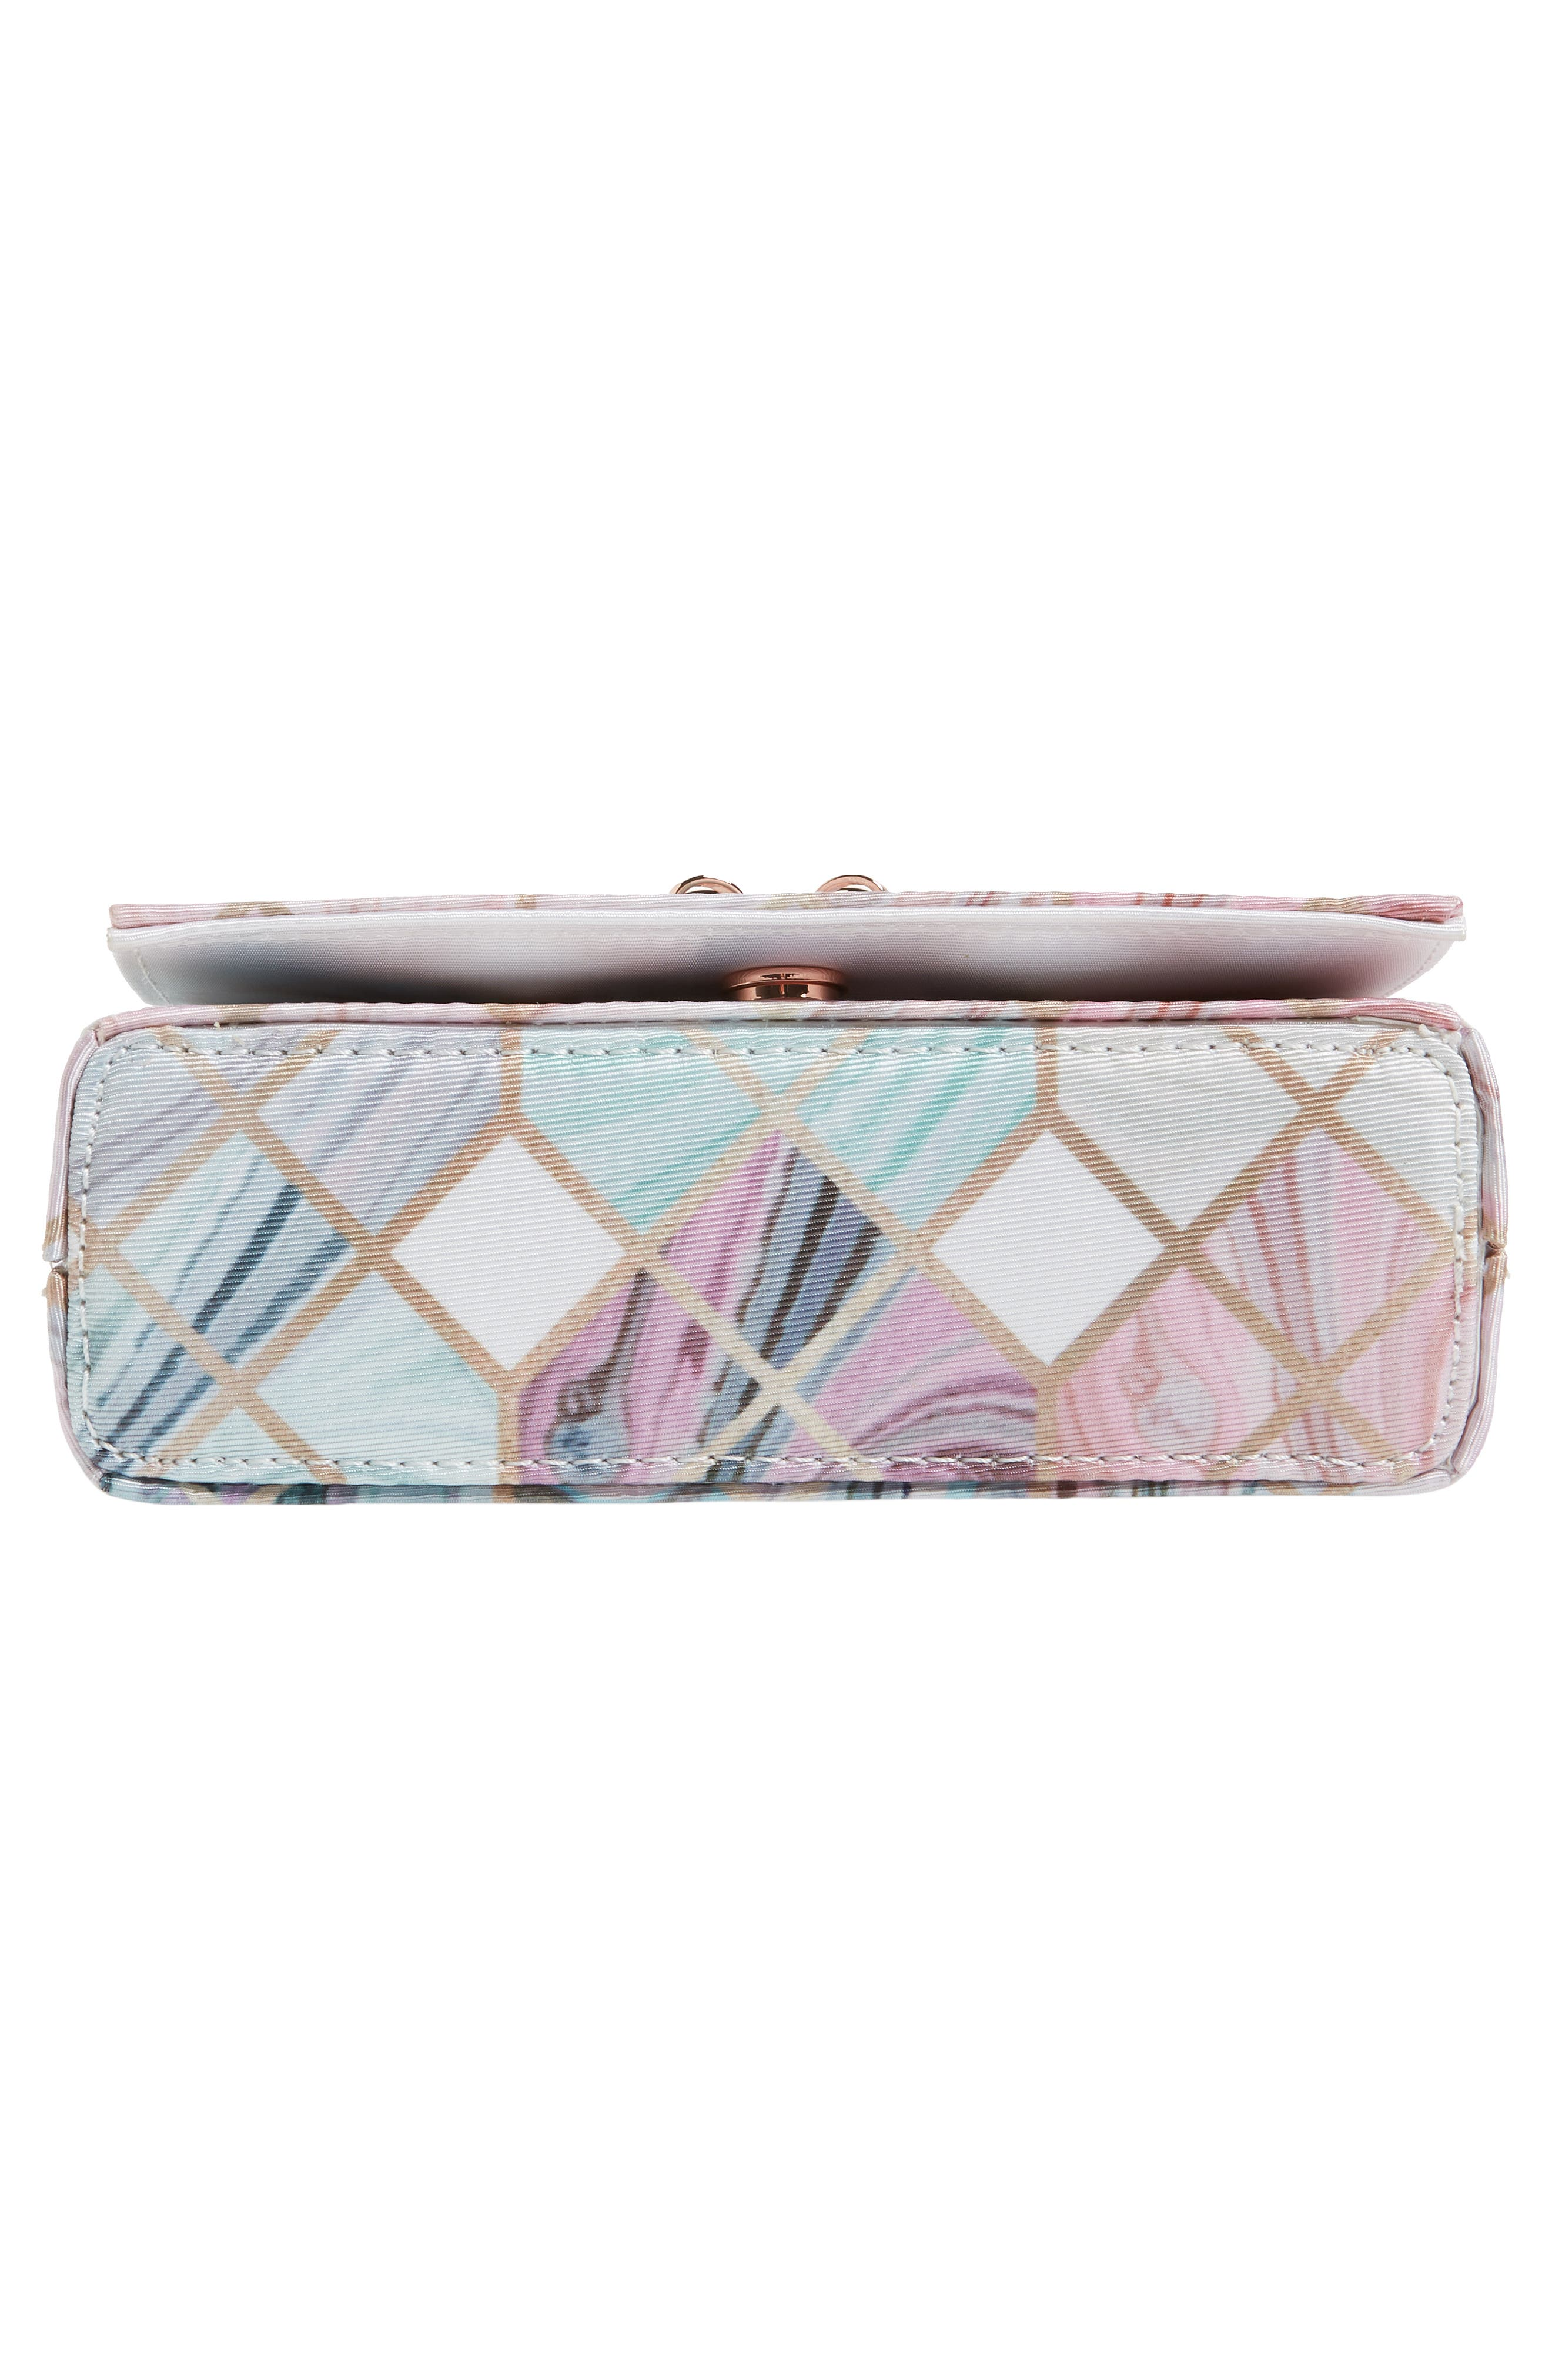 Nikiita Sea of Clouds Evening Bag,                             Alternate thumbnail 6, color,